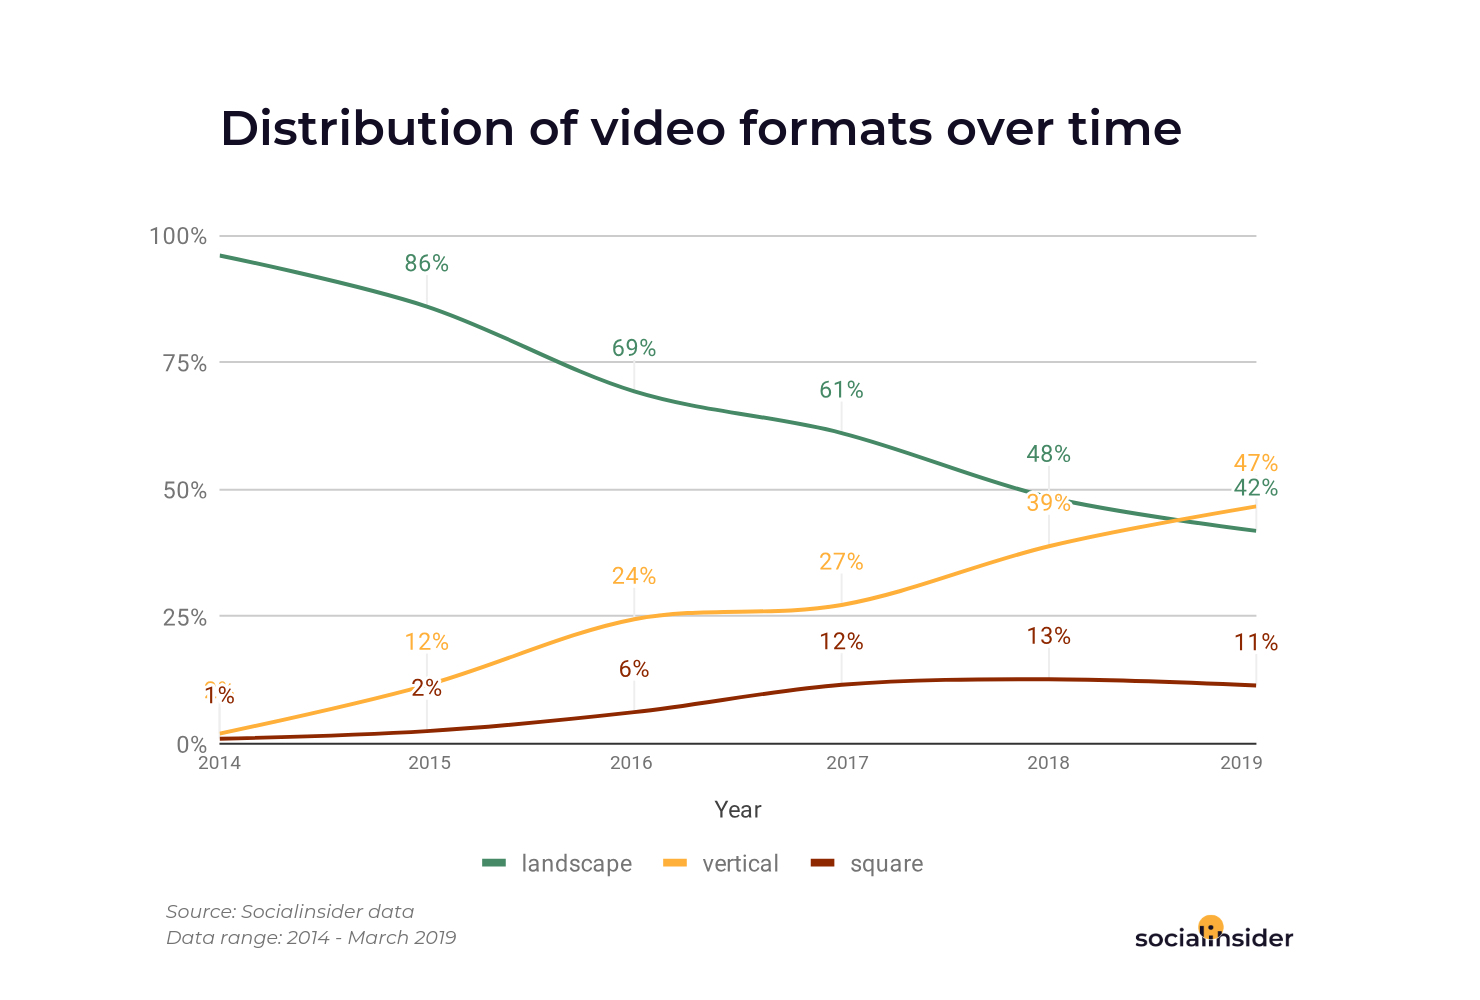 Vertical video is the most used video format on Facebook